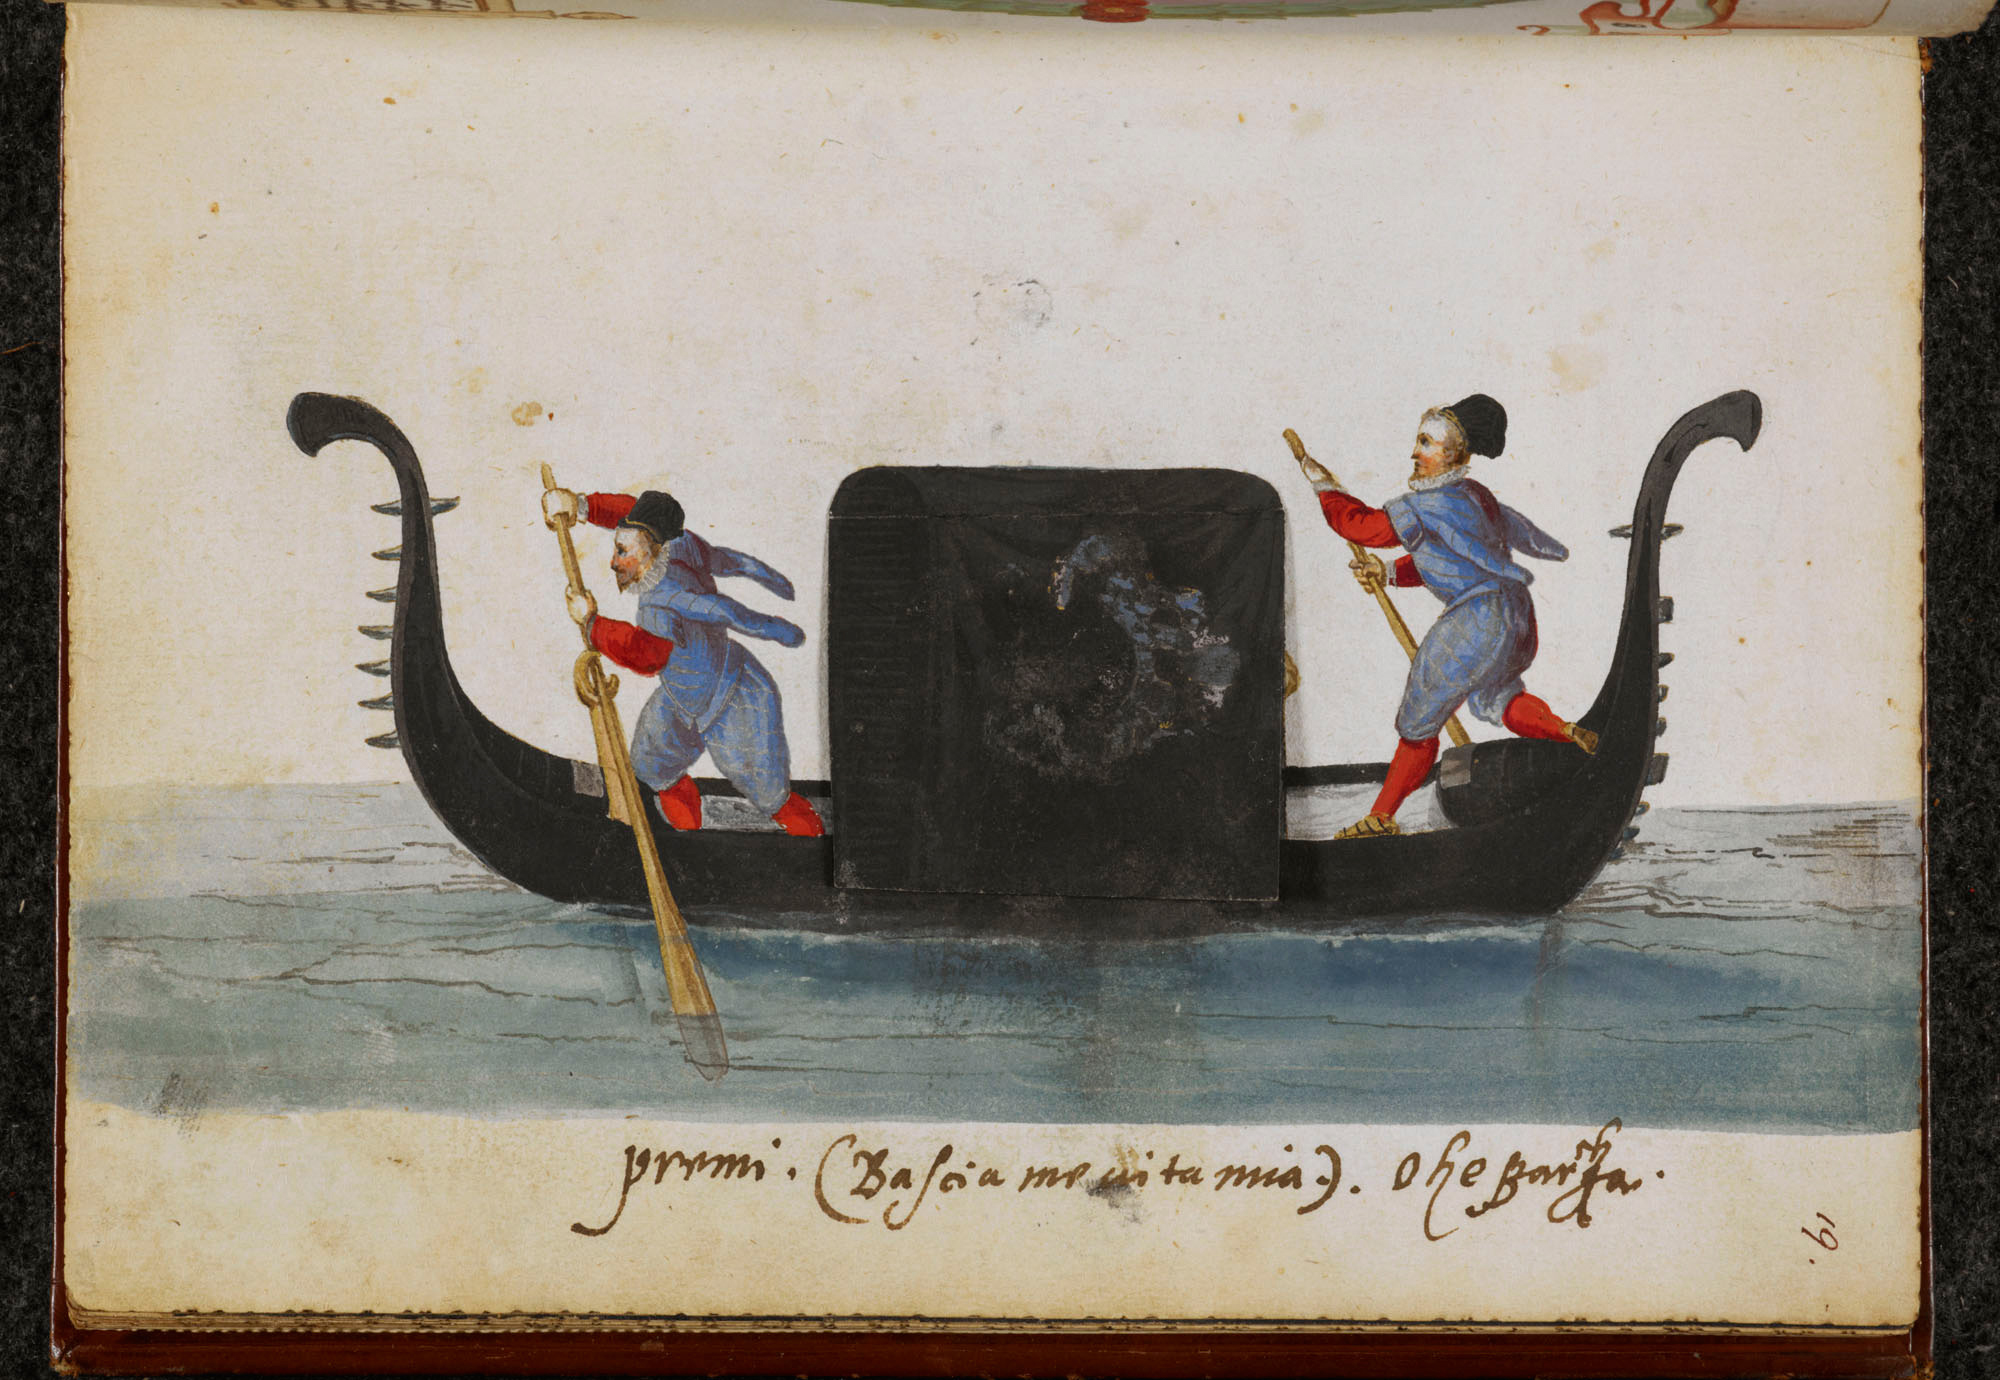 Lift-the-flap picture of a gondola in the Friendship Album of Erckenprecht Koler